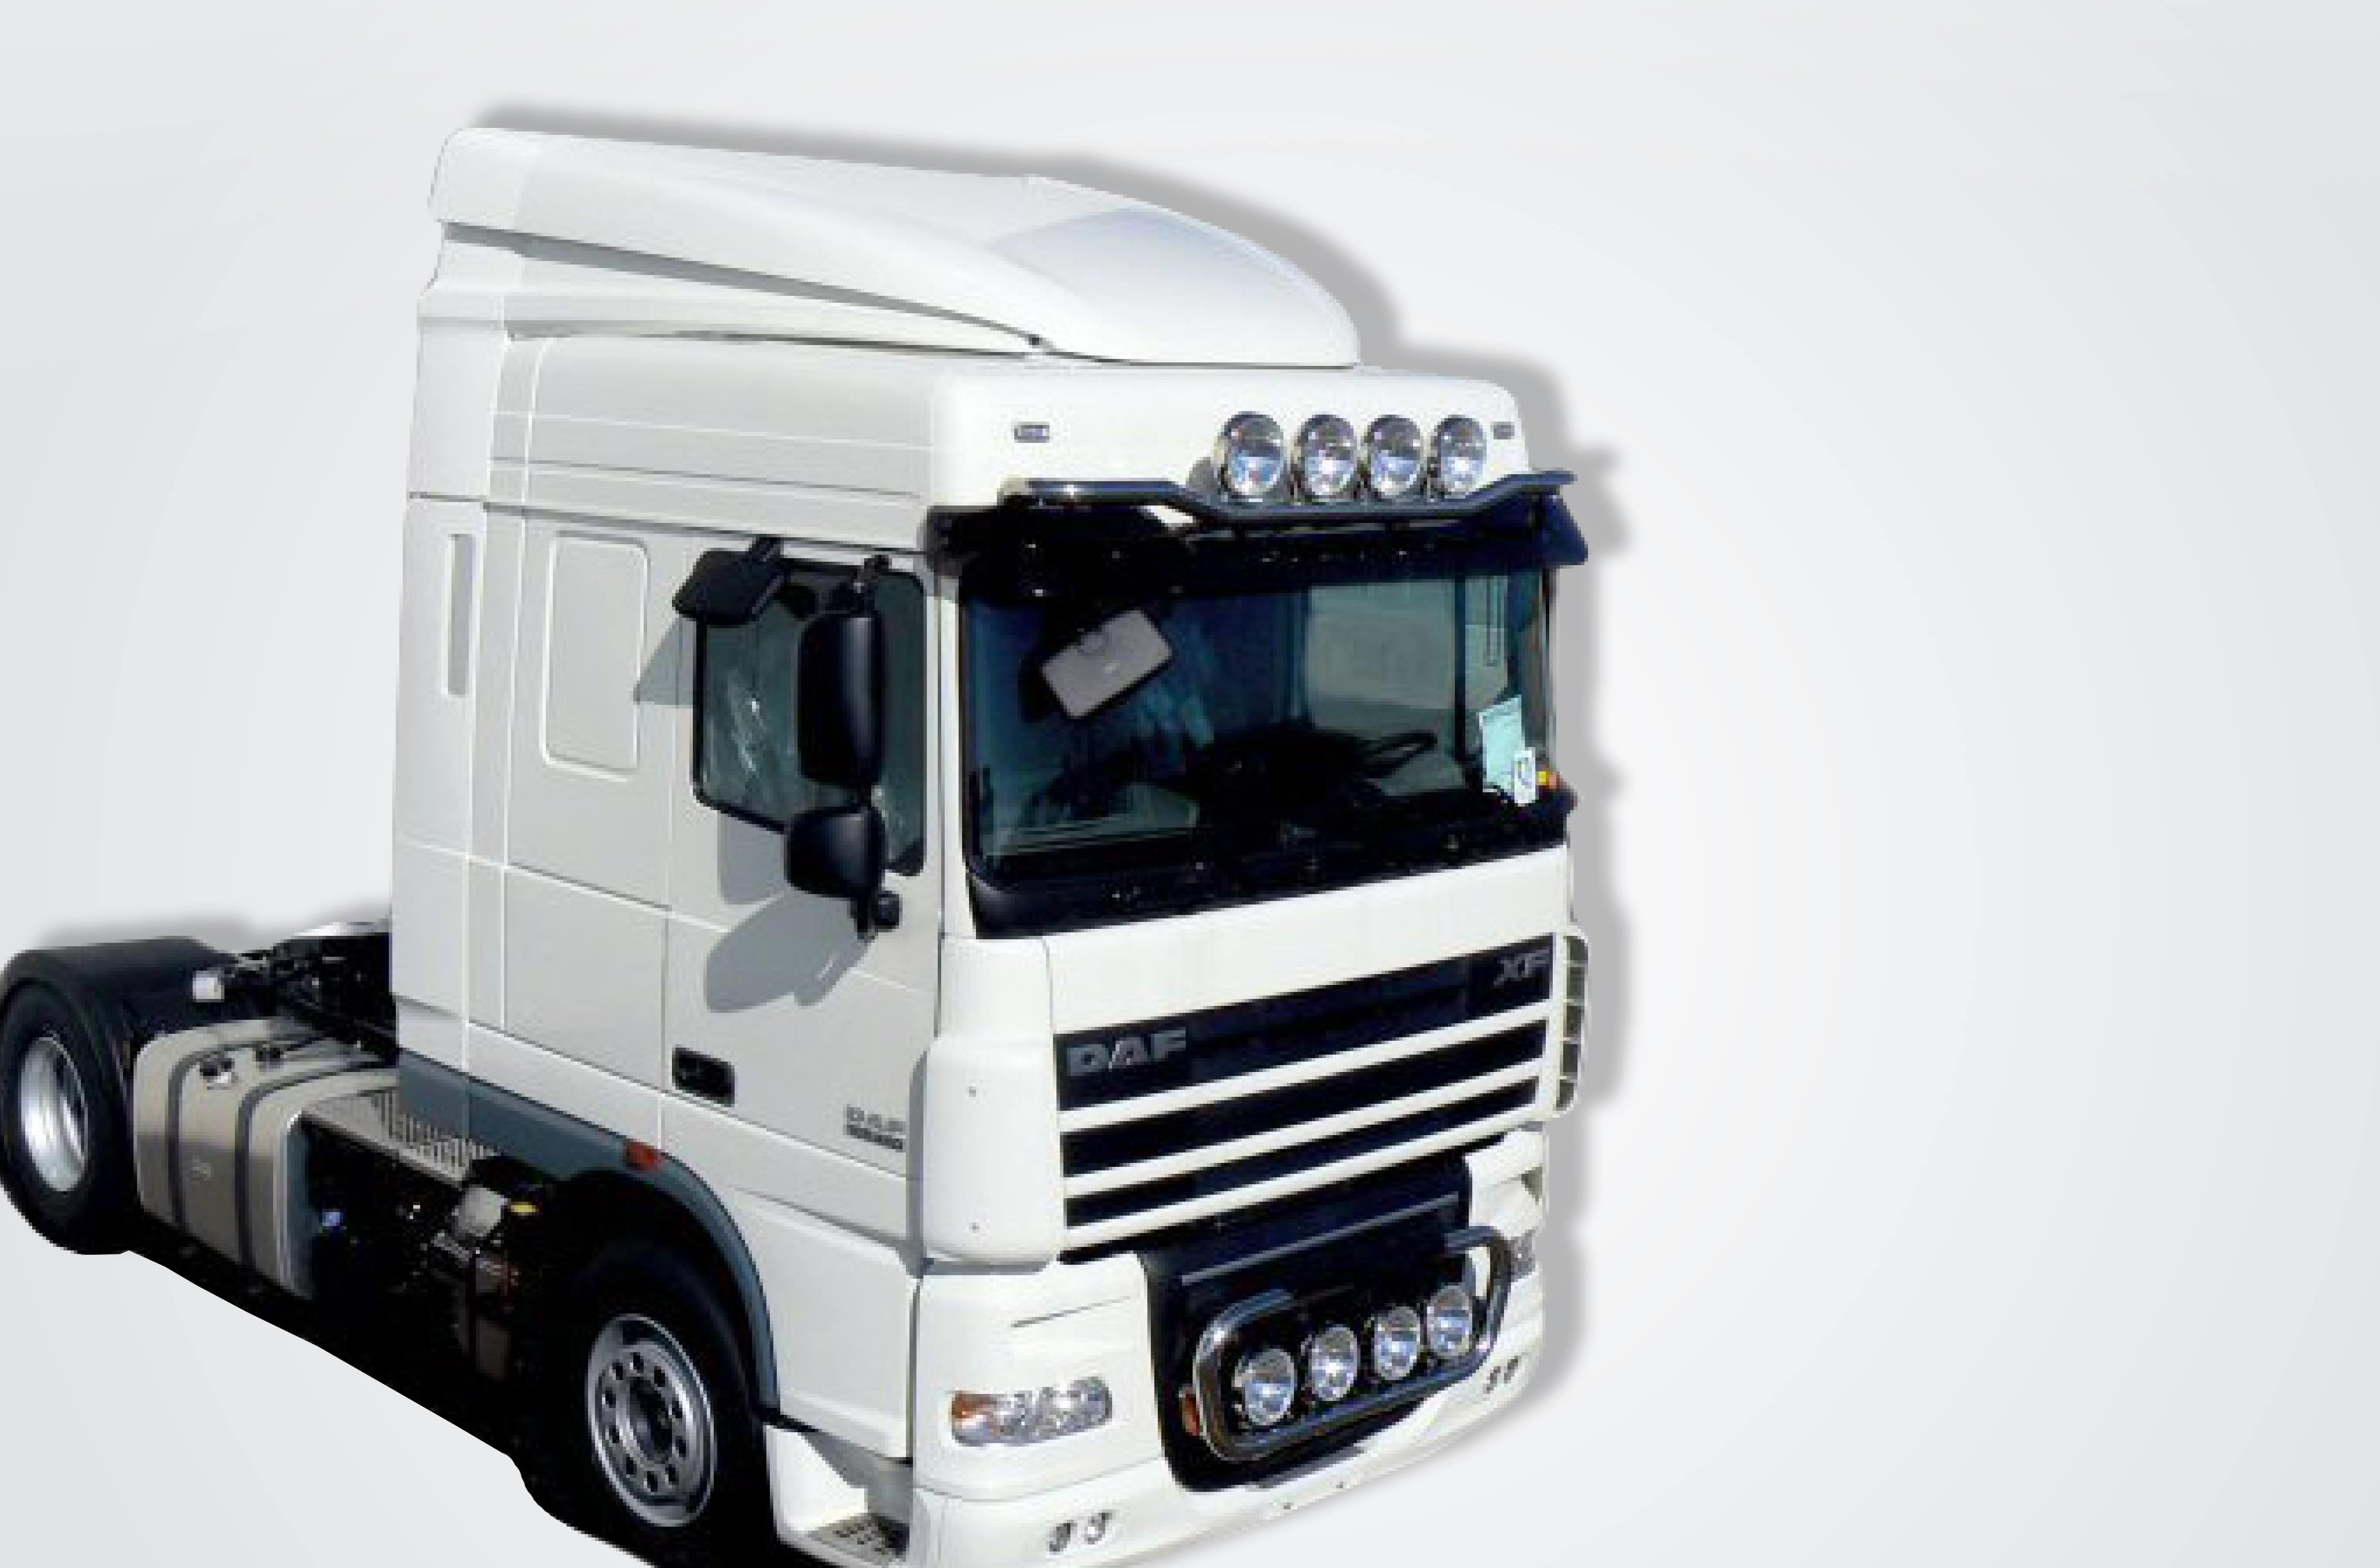 Deflector regulable Daf XF 105 Space Cab - Con aletas